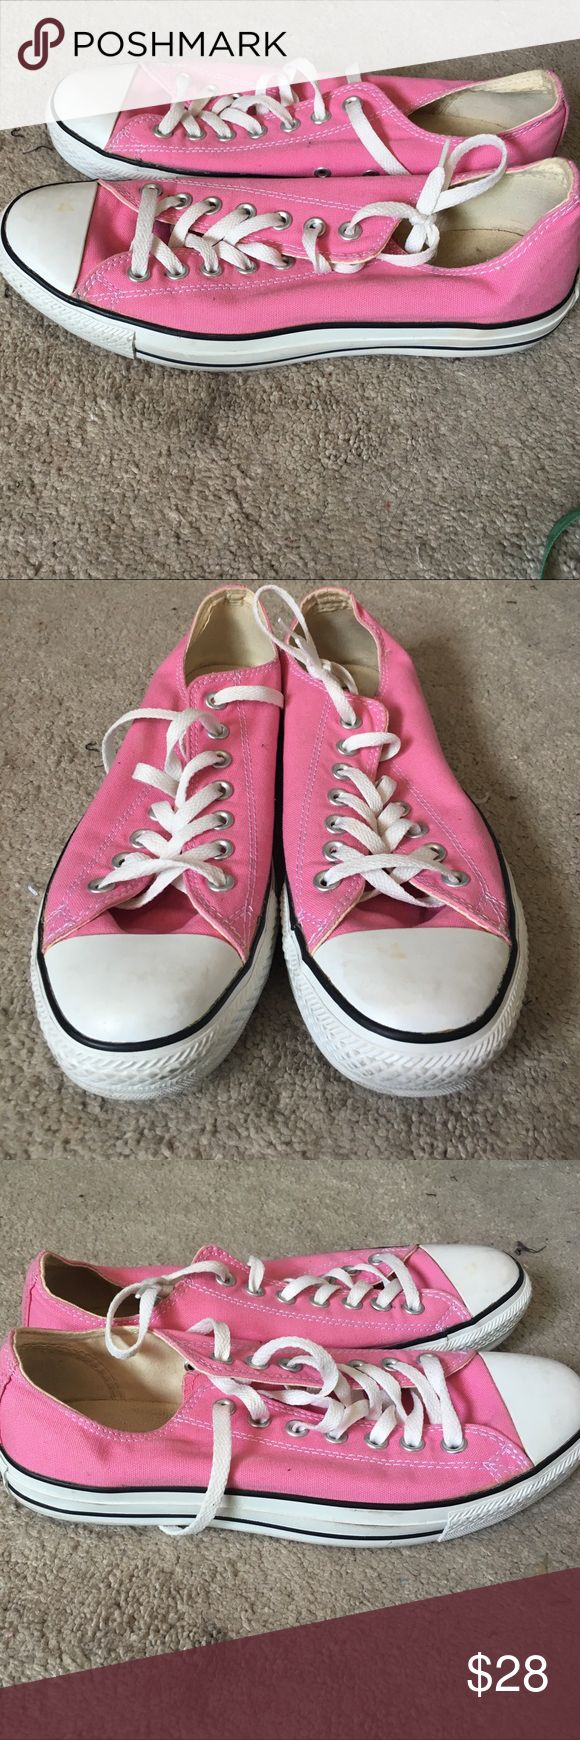 Converse all star size W 11.5 M 9.5 Purchased from the Converse store worn one time to Disneyland fit is true to size size 11 1/2 women and 9 1/2 men's Converse Shoes Sneakers